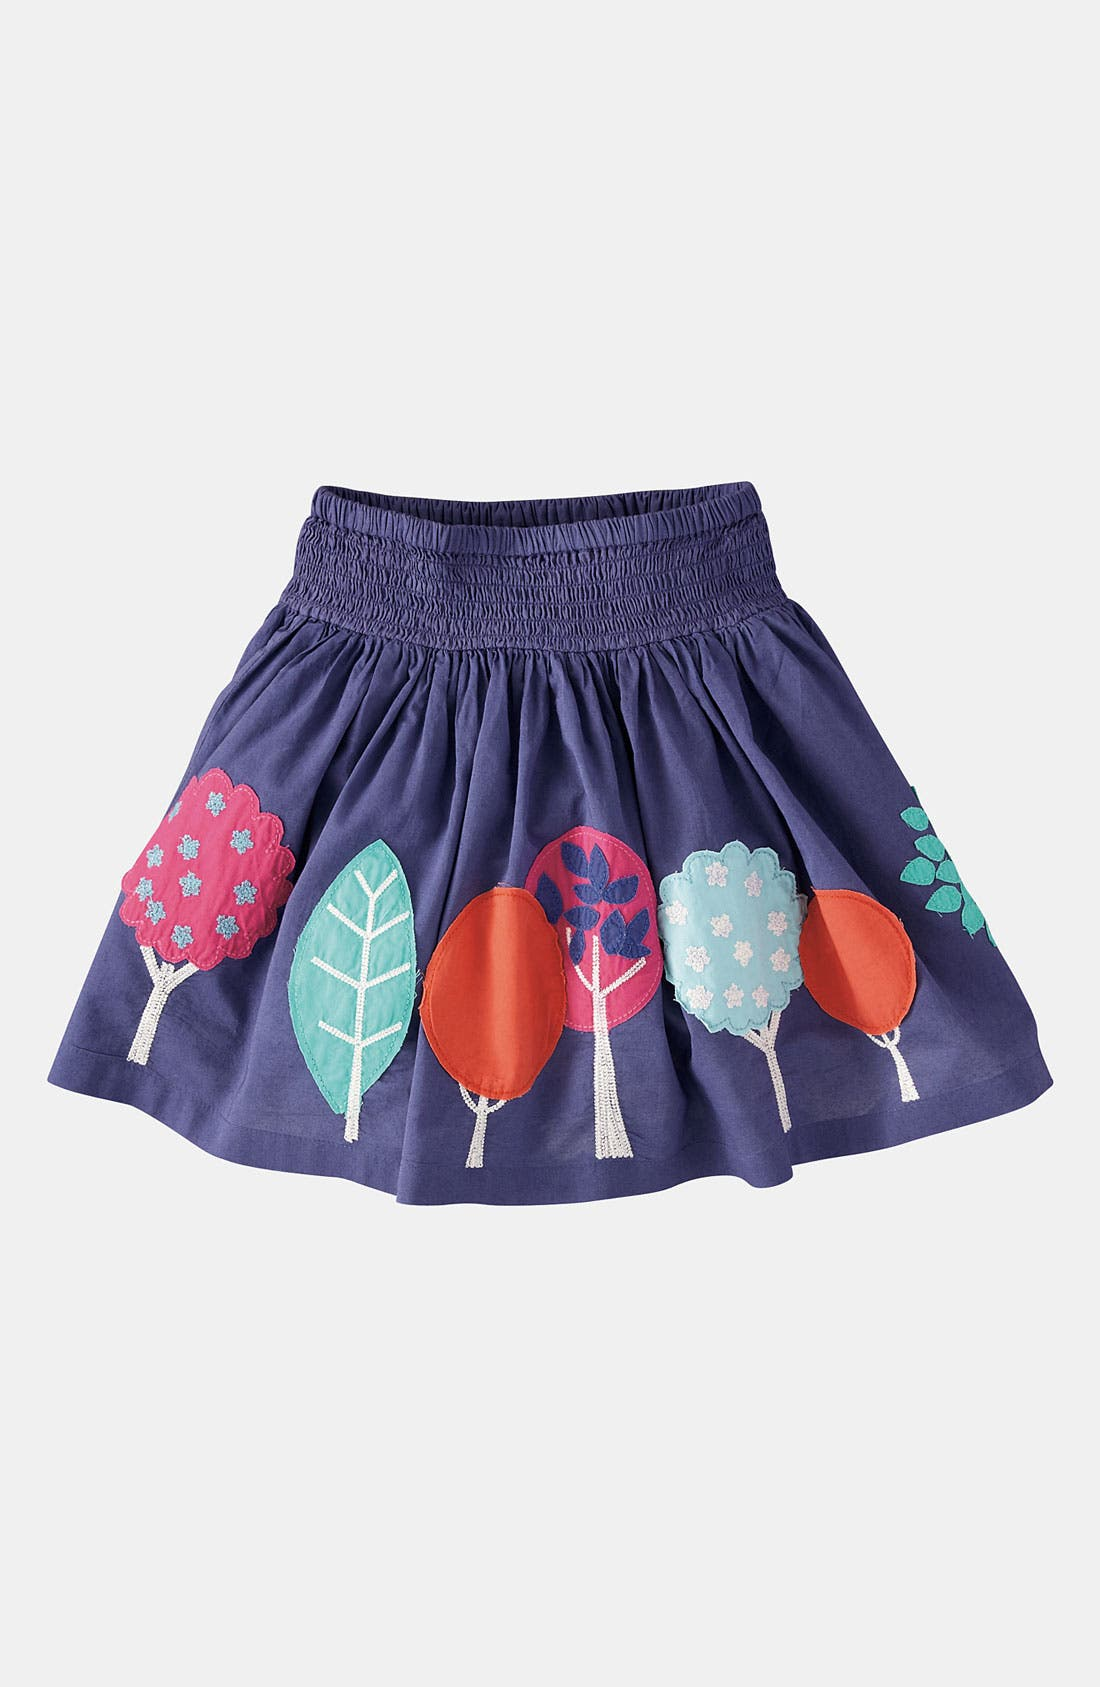 Alternate Image 1 Selected - Mini Boden Appliqué Skirt (Little Girls & Big Girls)